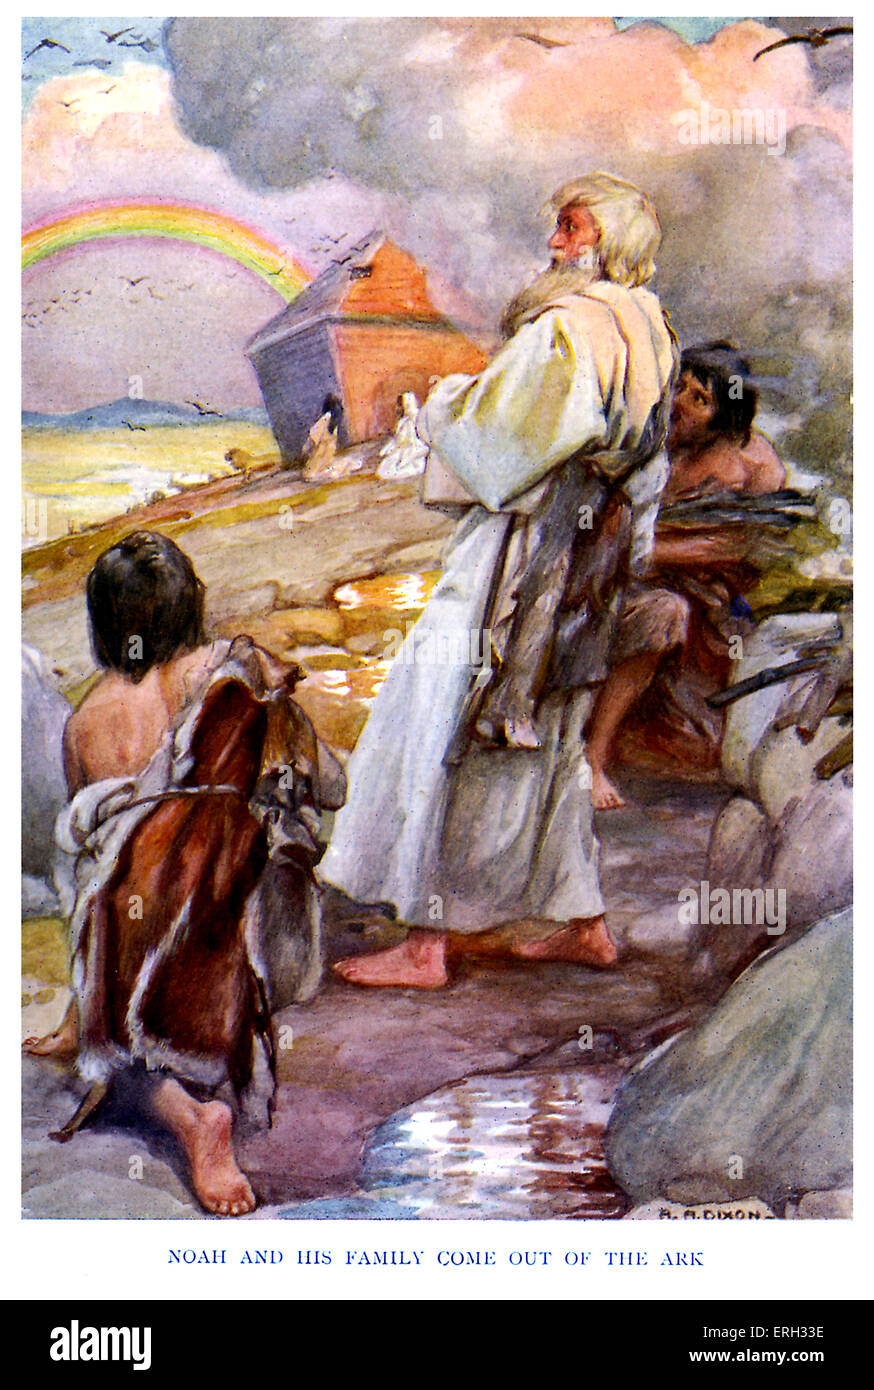 the flood caption reads u0027noah and his family come out of the